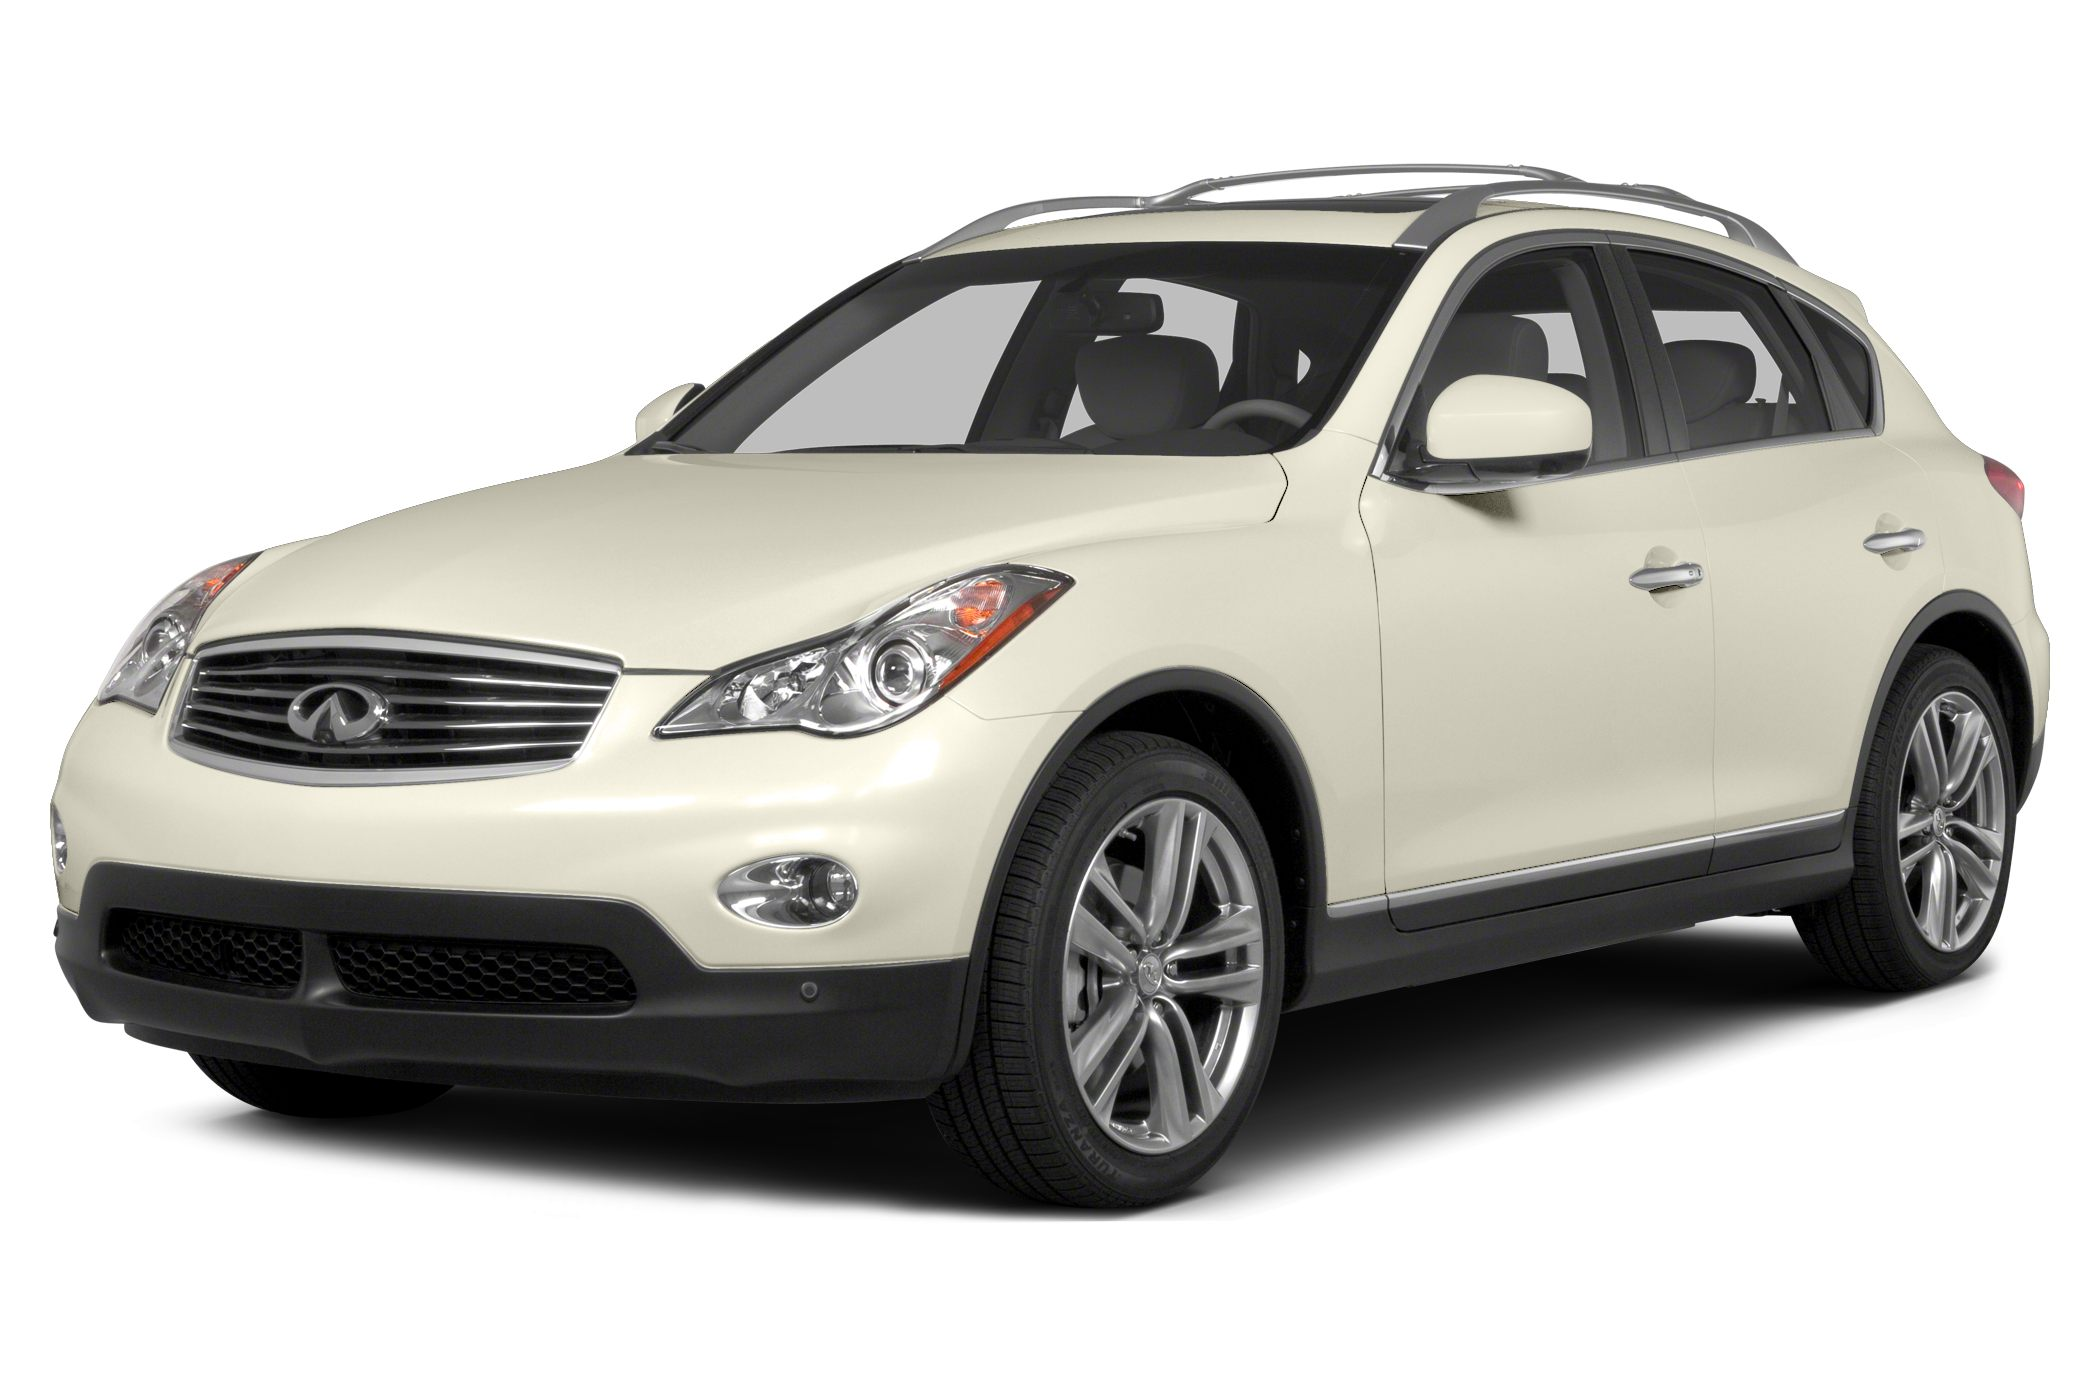 infinity the usa infiniti suv all from explore and videos photos pin angles see